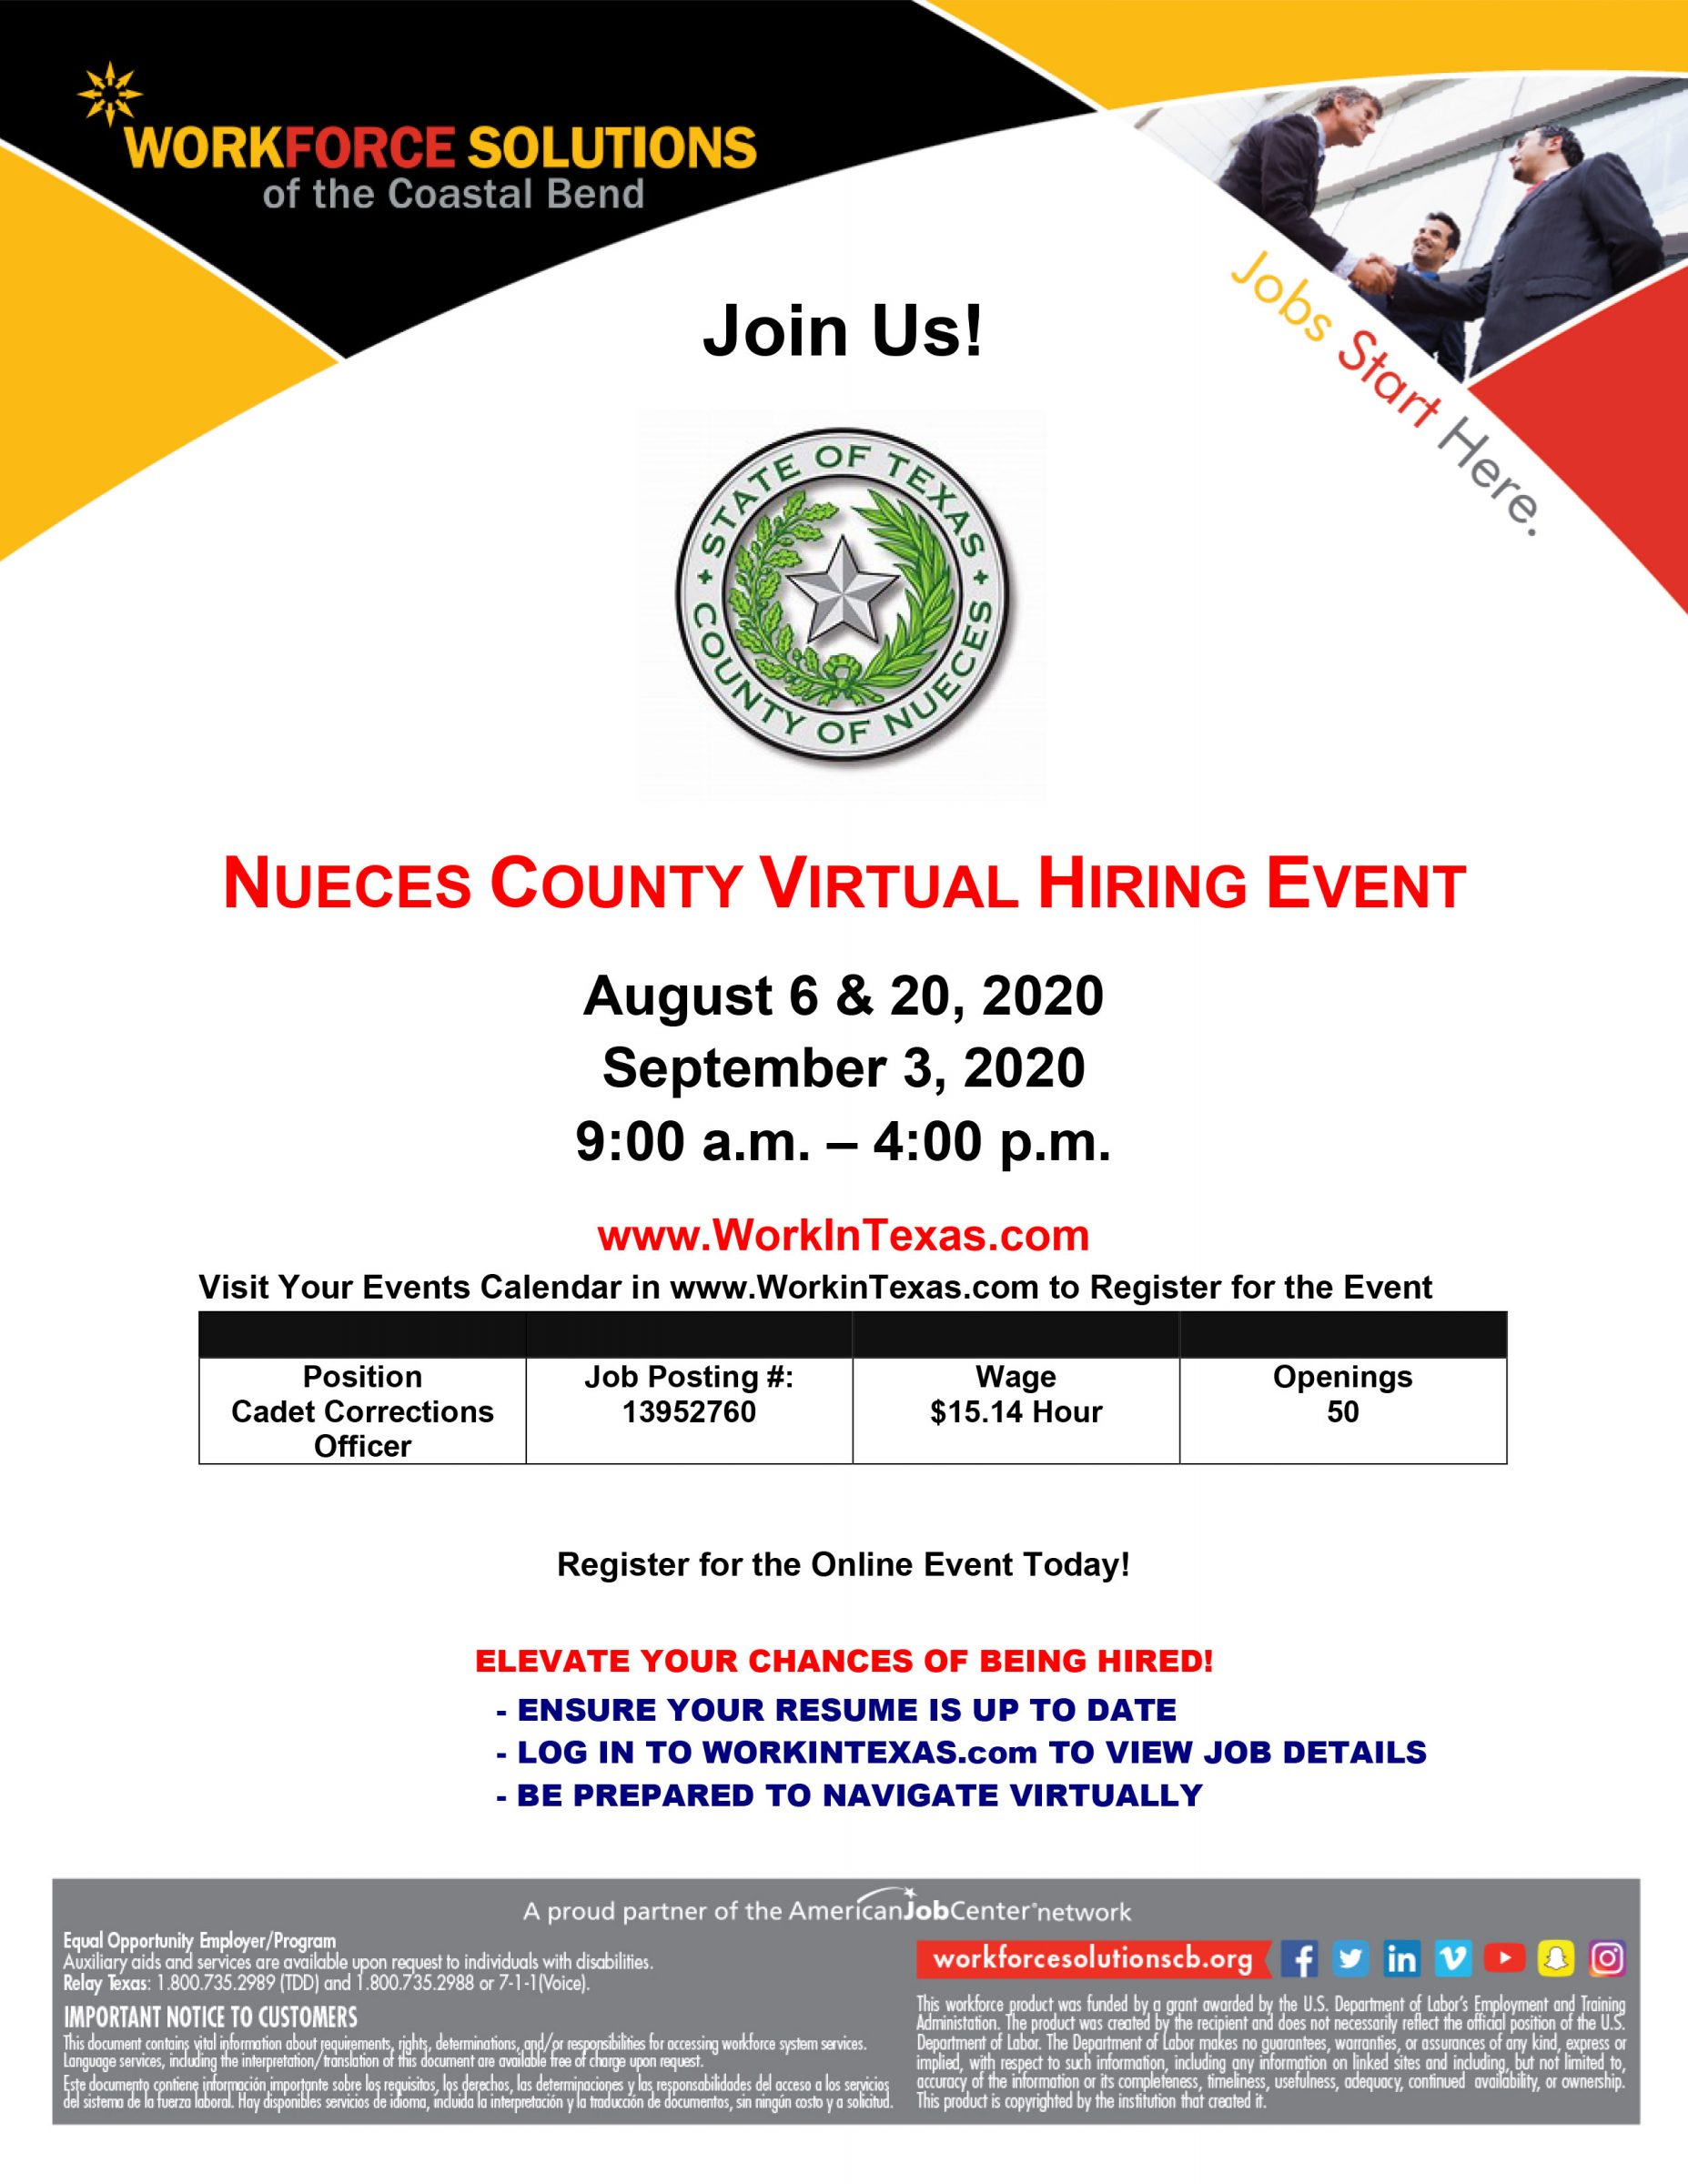 Nueces County Virtual Hiring Event on August 6th, 20th and September 3rd from 9:00 AM - 4:00 PM; Position Open is Cadet Corrections Officer, Job Posting Number is 13952760,, Wage is $15.14 Per Hour, 50 Job Openings